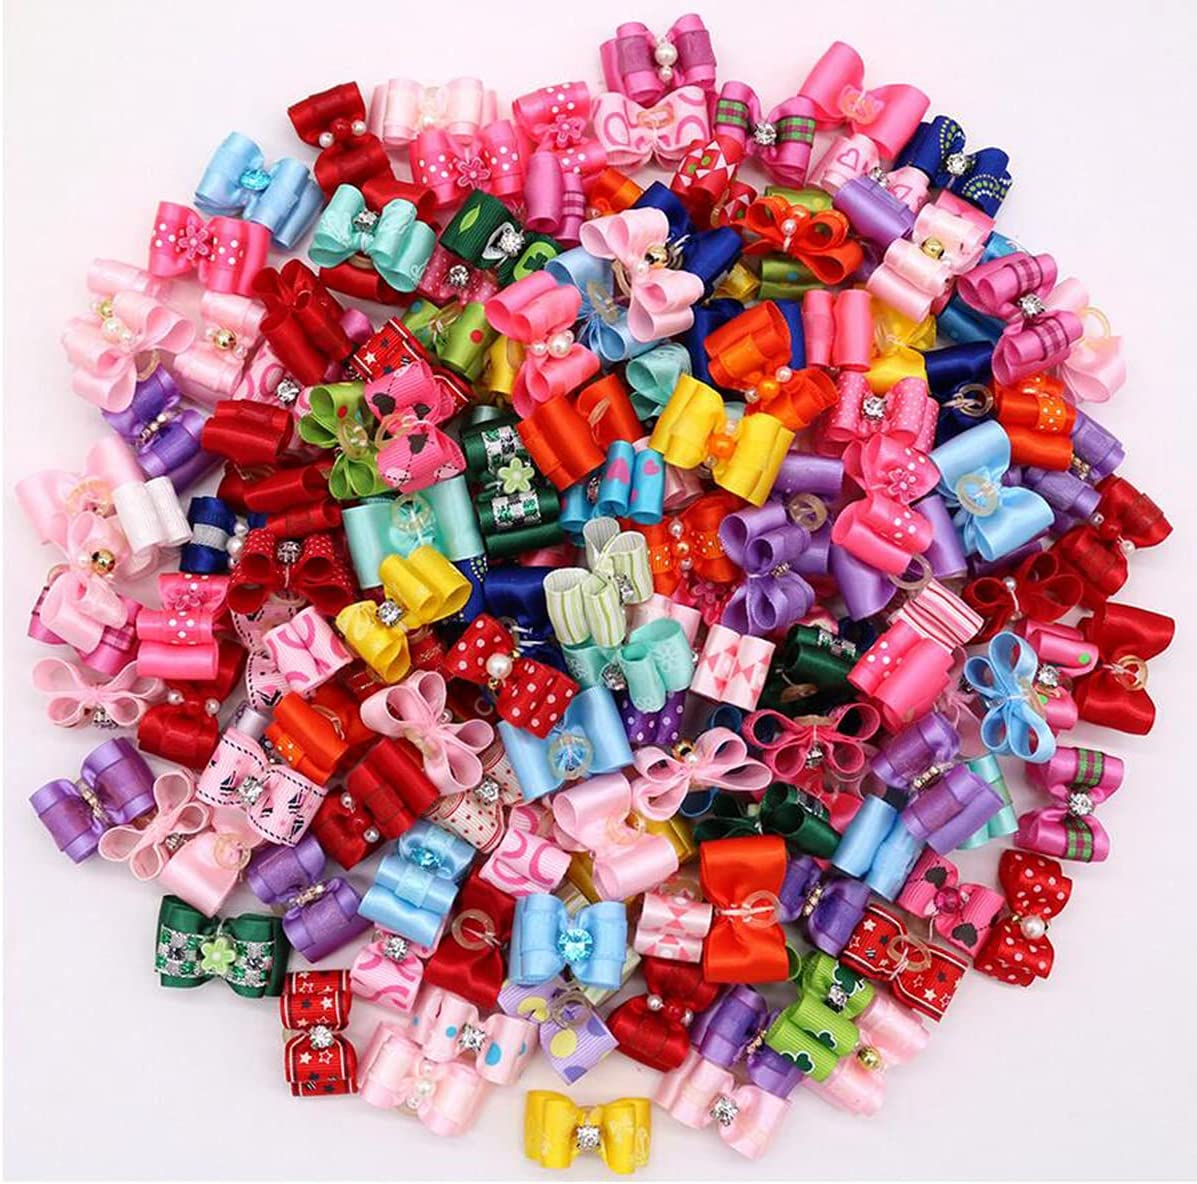 Petunny Puppy Dog Hair Bows Max 56% OFF 30Pcs In stock Doggy Rhineston Cute